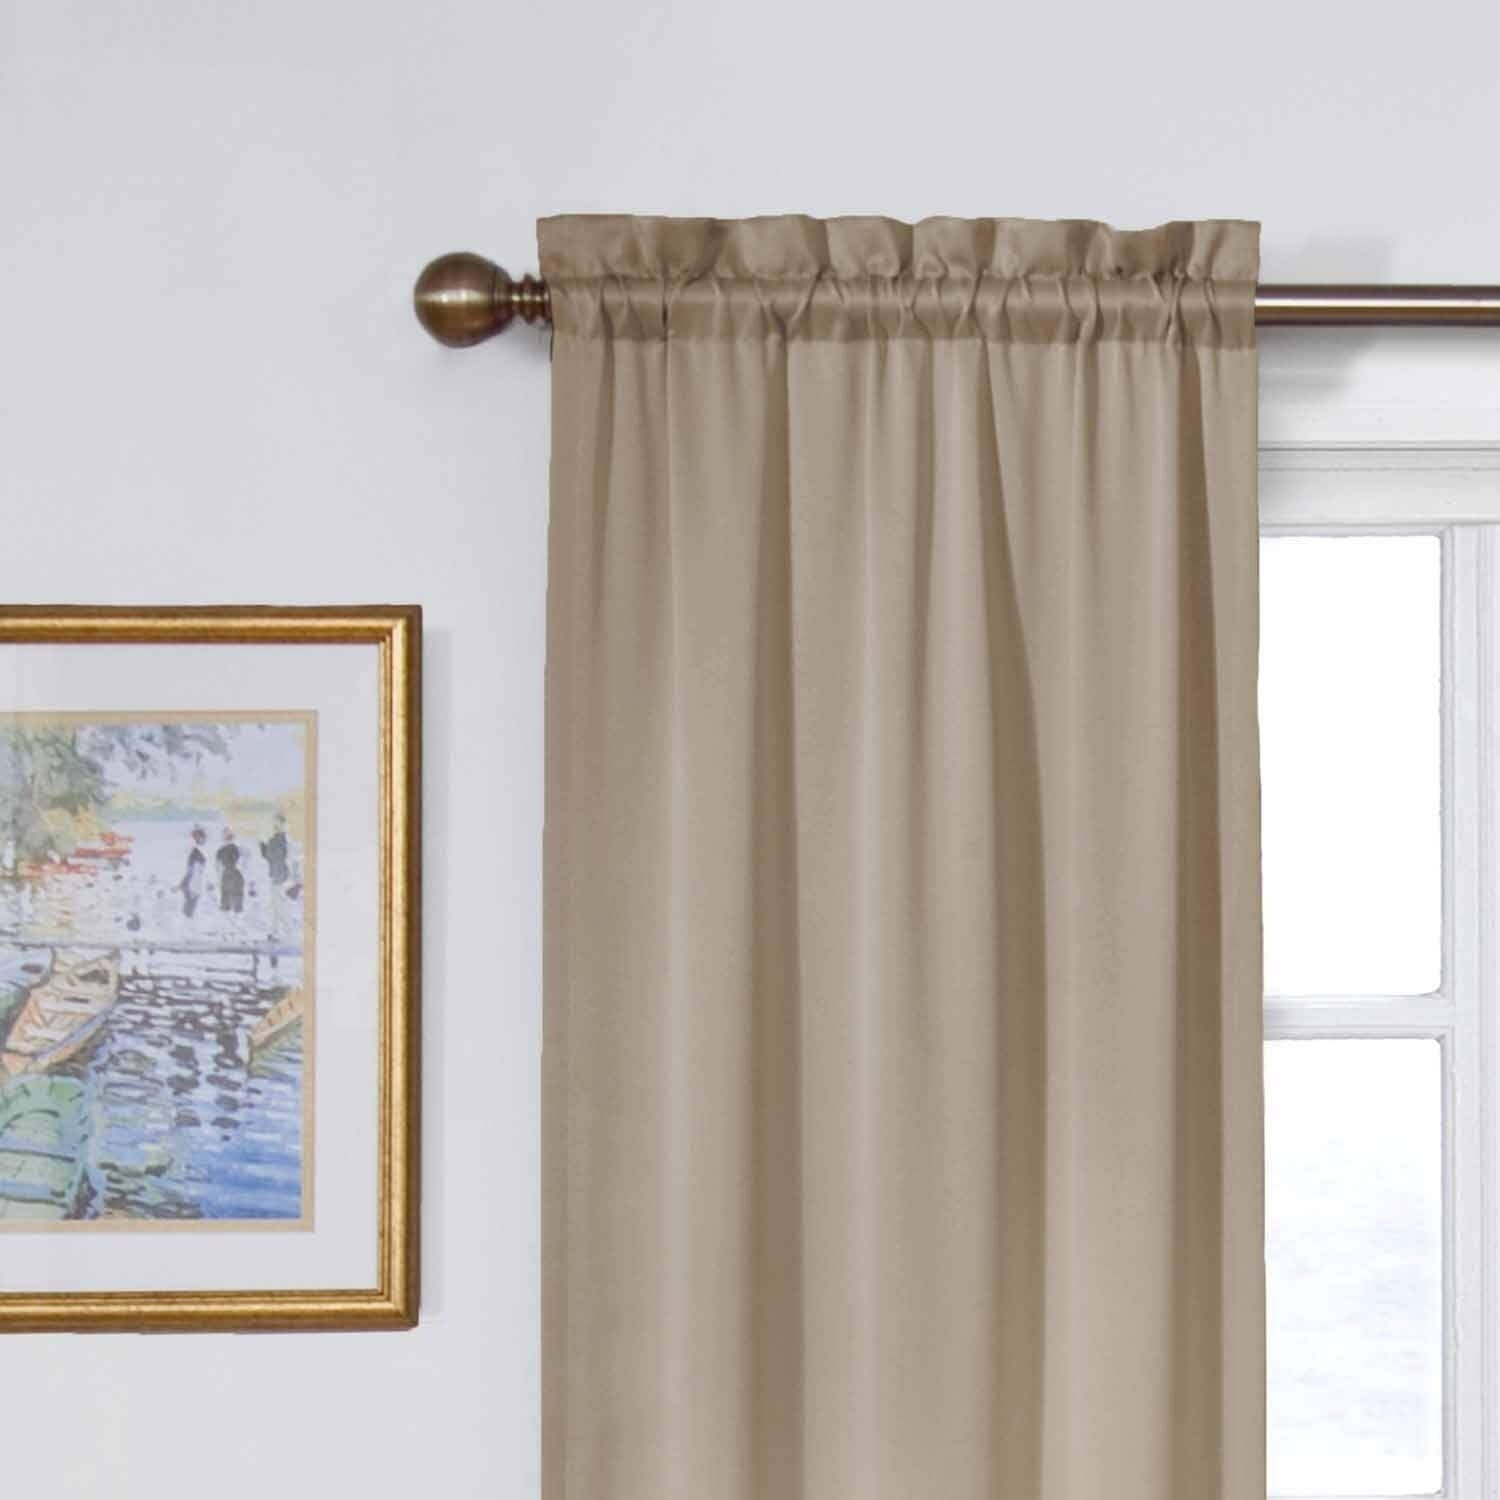 Black ECLIPSE Room Darkening Curtains for Bedroom Solid Thermapanel 54 x 54 Thermal Insulated Single Panel Rod Pocket Light Blocking Curtains for Living Room